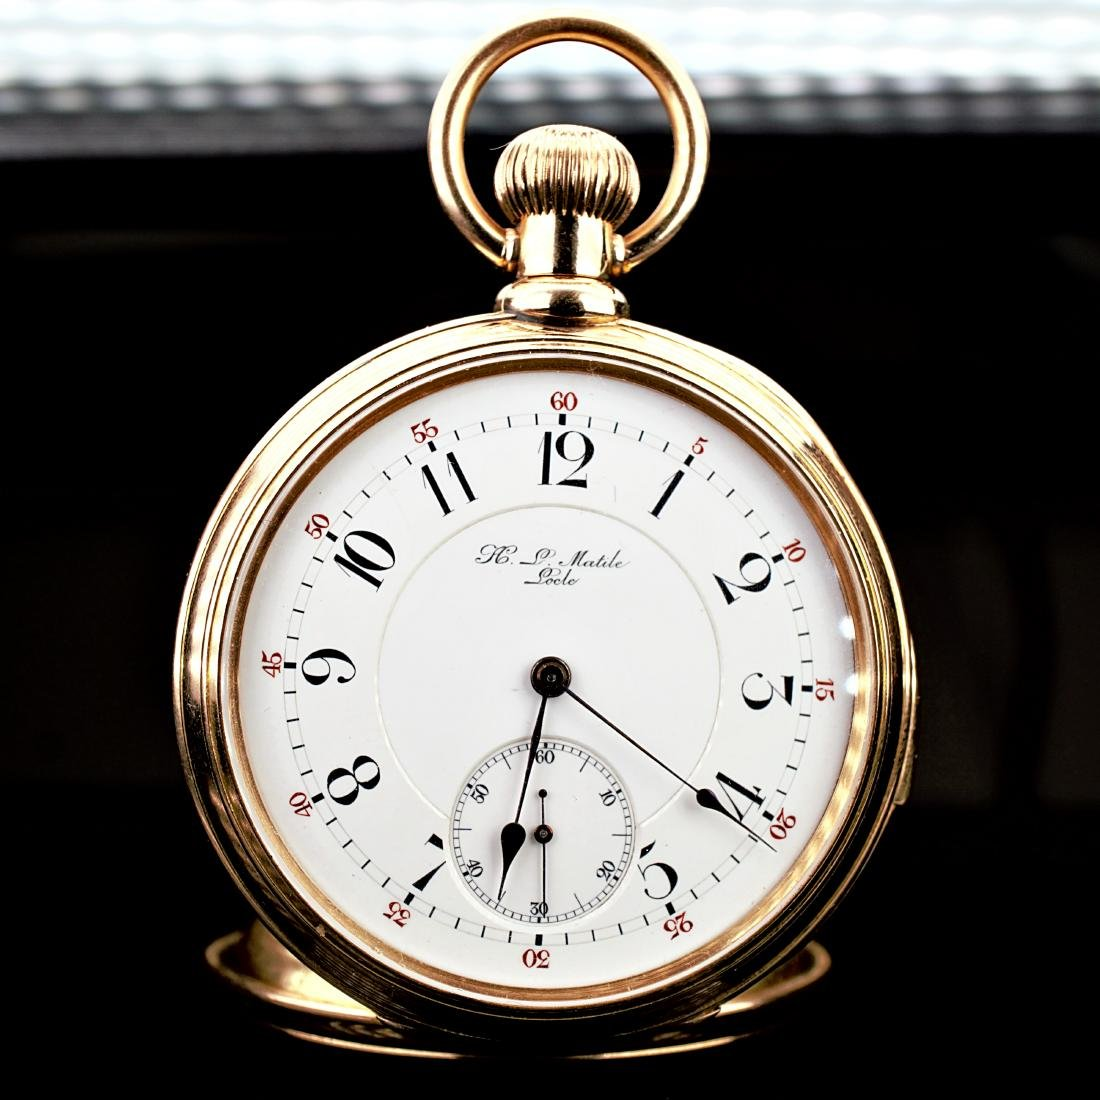 18k Yg Locle Minute Repeater Pocket Watch